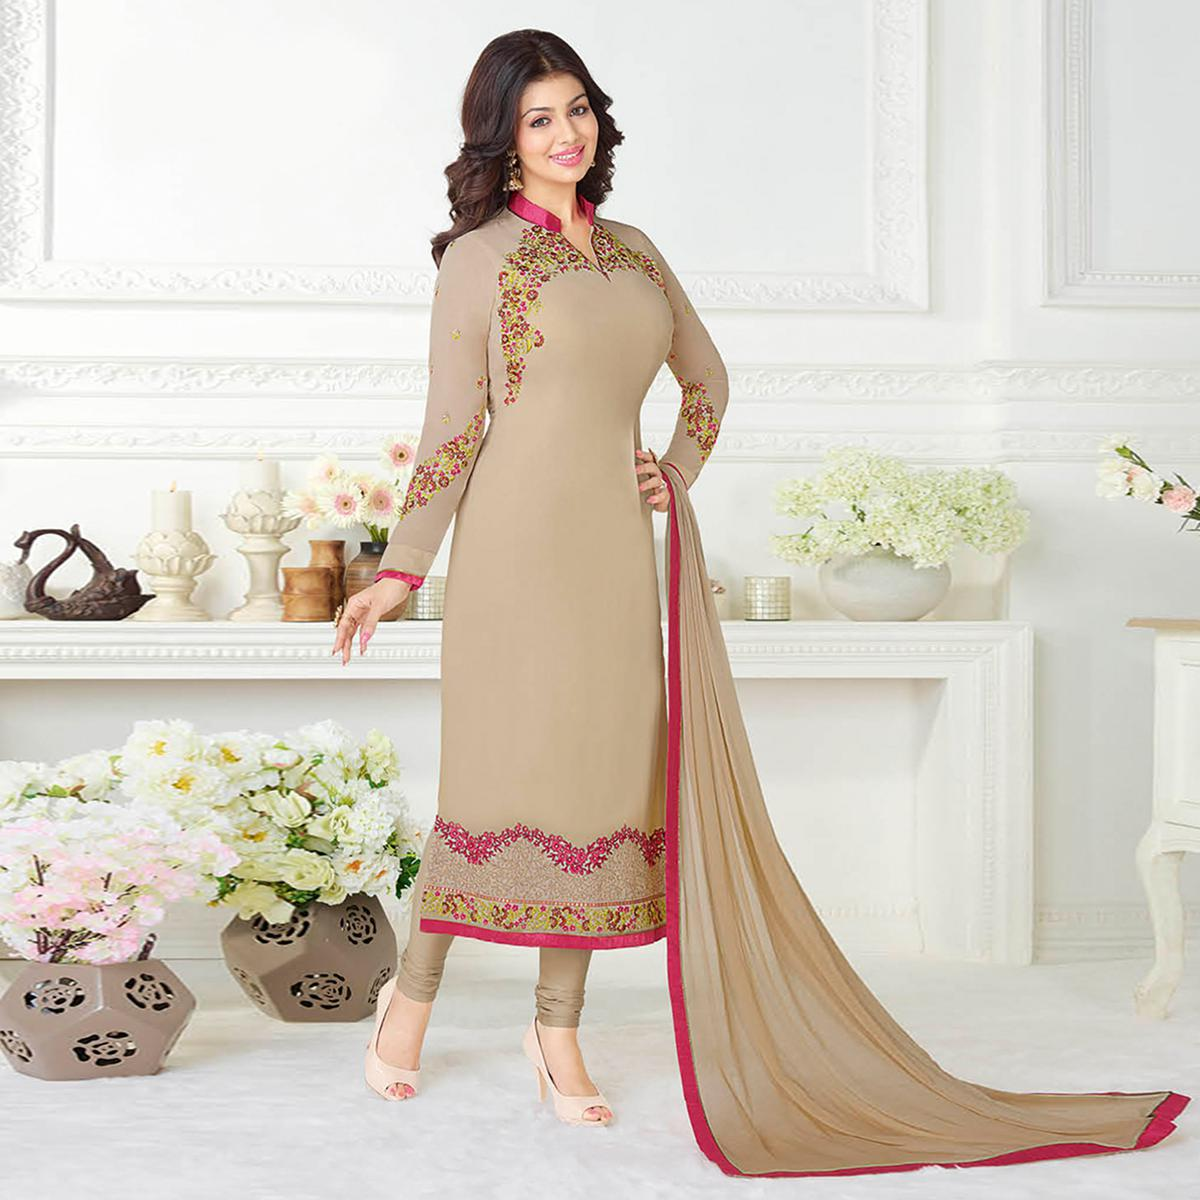 Elegant Chikoo Colored Embroidered Party Wear Georgette Suit